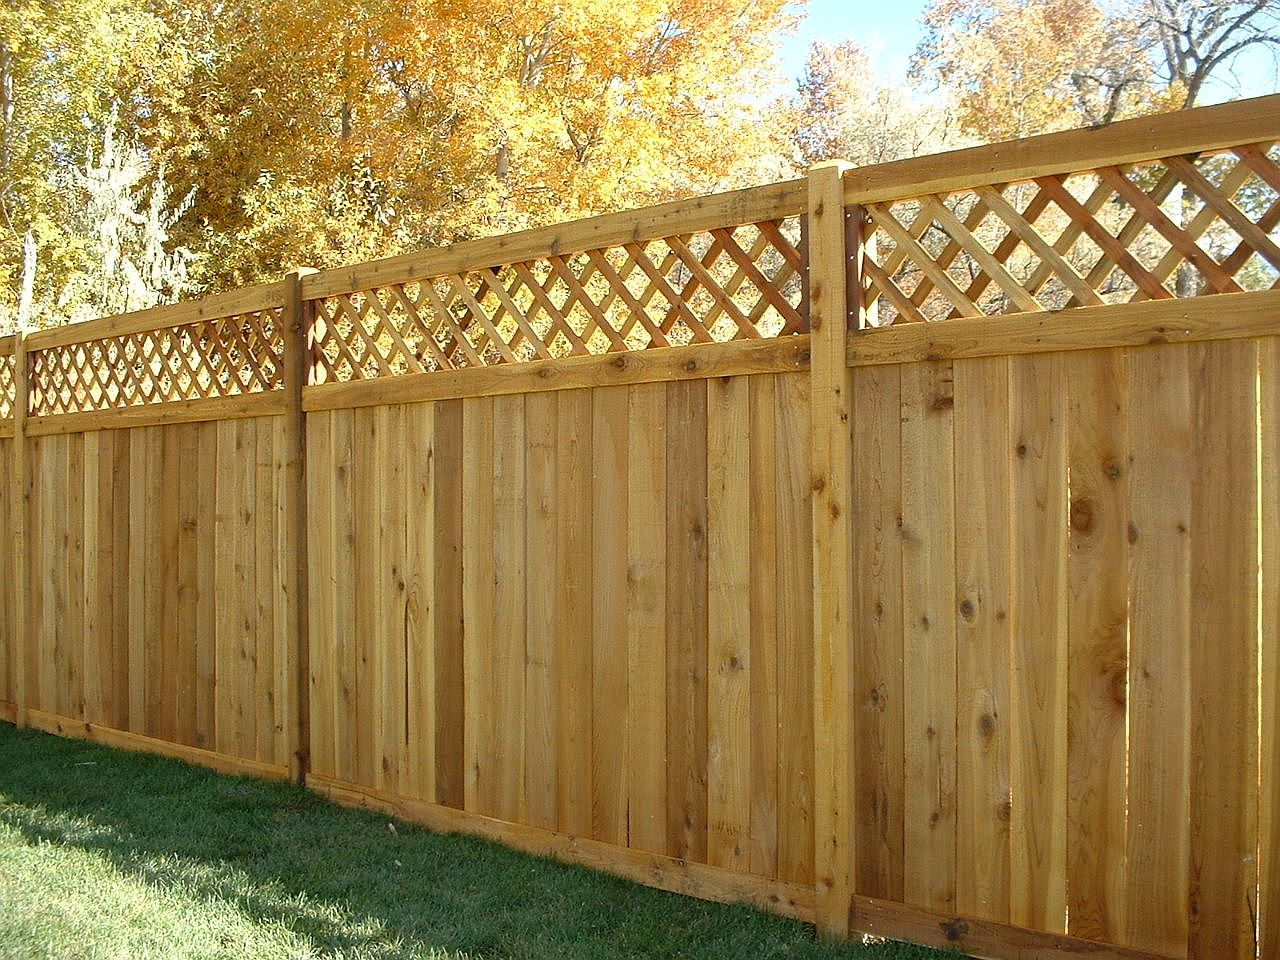 Menards privacy wood fence with lattice the ashton vinyl menards privacy wood fence with lattice the ashton vinyl privacy fence vinyl fencing baanklon Choice Image